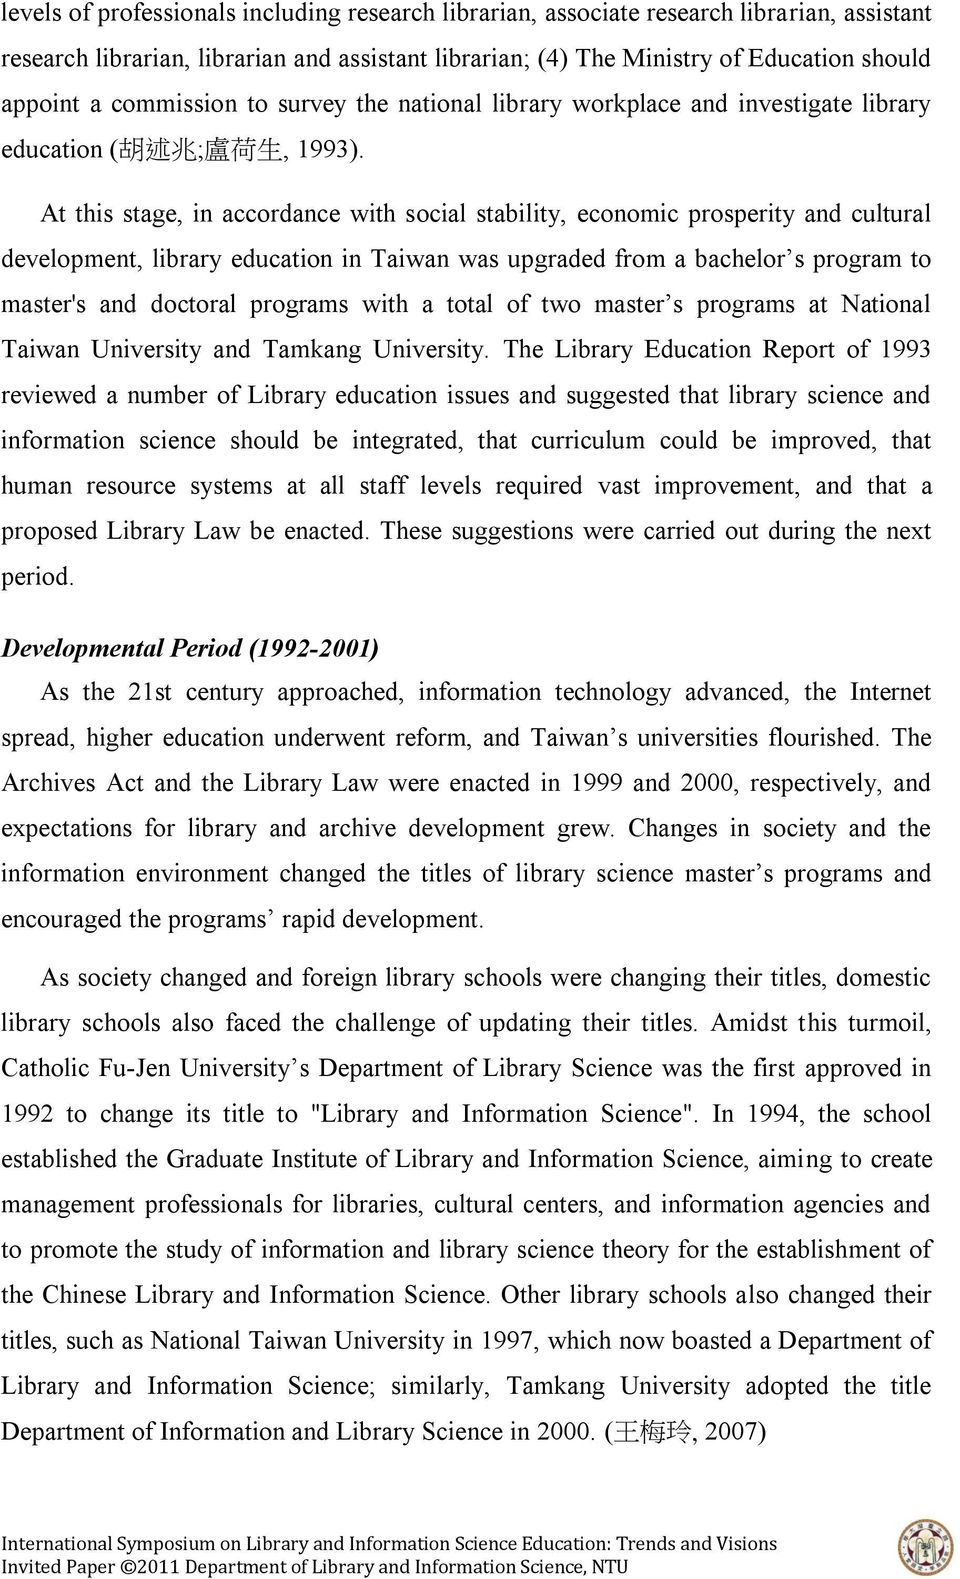 At this stage, in accordance with social stability, economic prosperity and cultural development, library education in Taiwan was upgraded from a bachelor s program to master's and doctoral programs